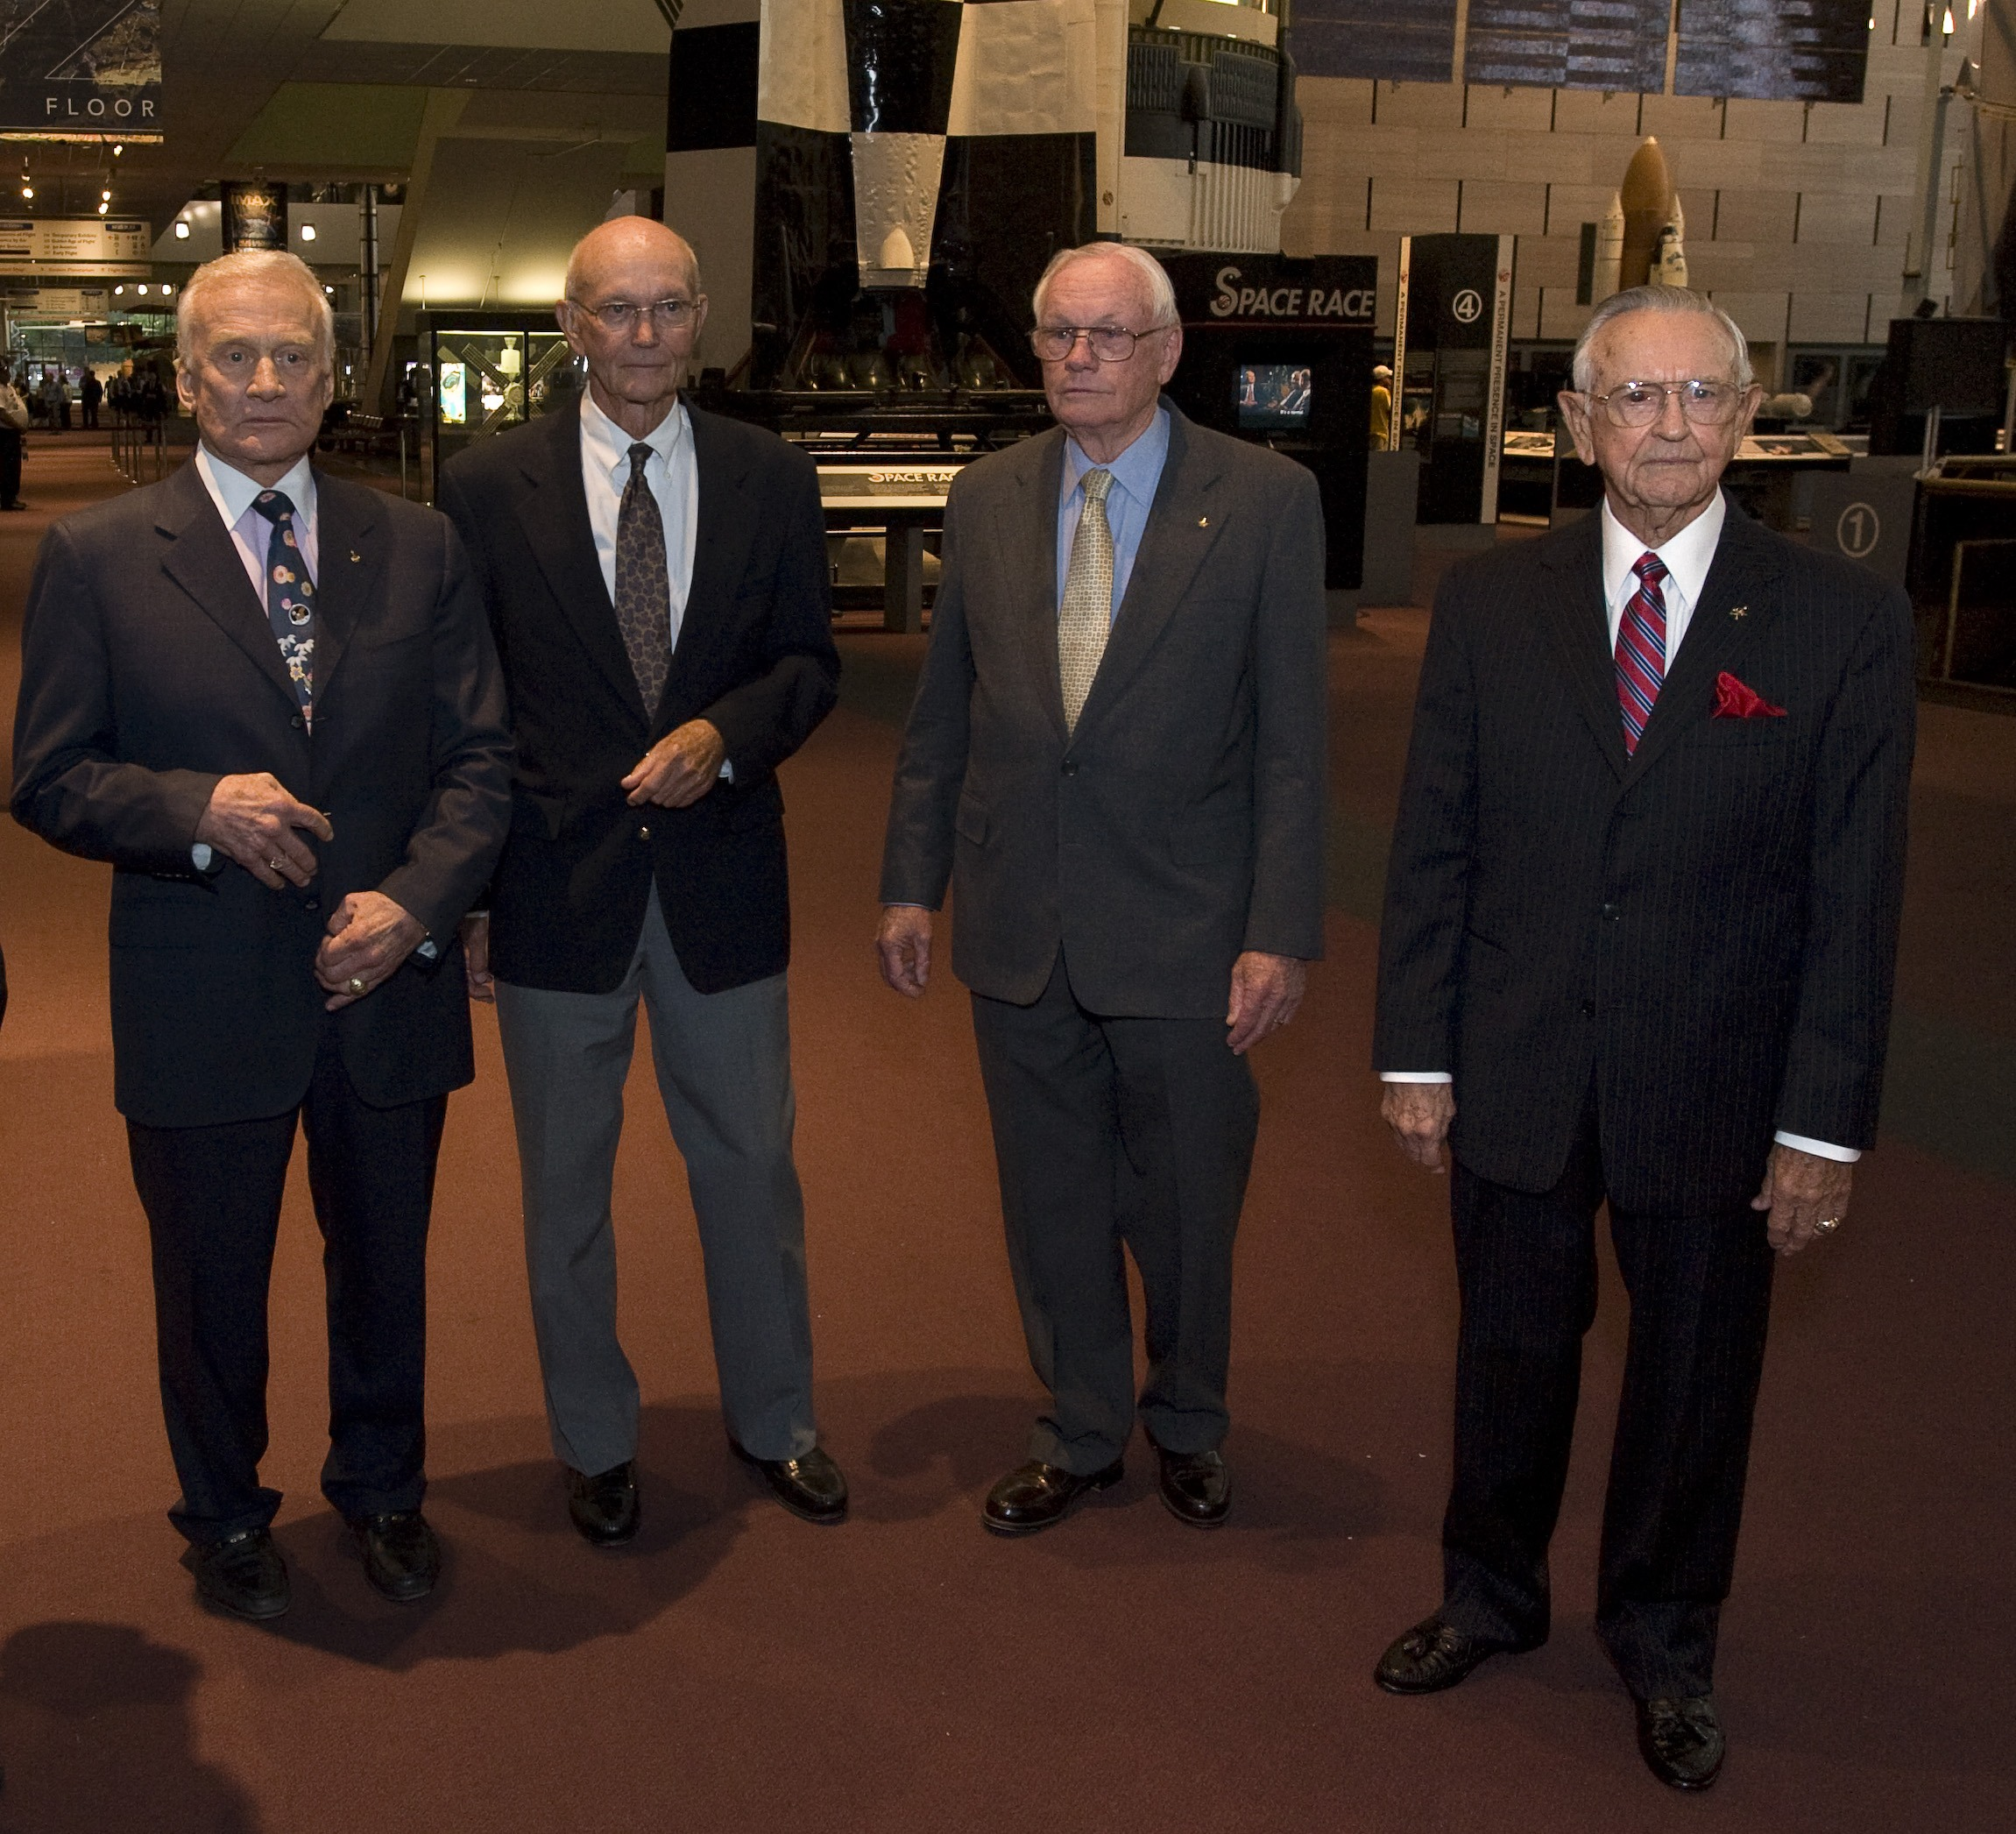 On the eve of the 40th anniversary of the first human landing on the Moon, <em>Apollo 11</em> crew members, Buzz Aldrin, left, Michael Collins, and Neil Armstrong and NASA Mission Control creator Chris Kraft, right, during their visit to the National Air and Space Museum on July 19, 2009.